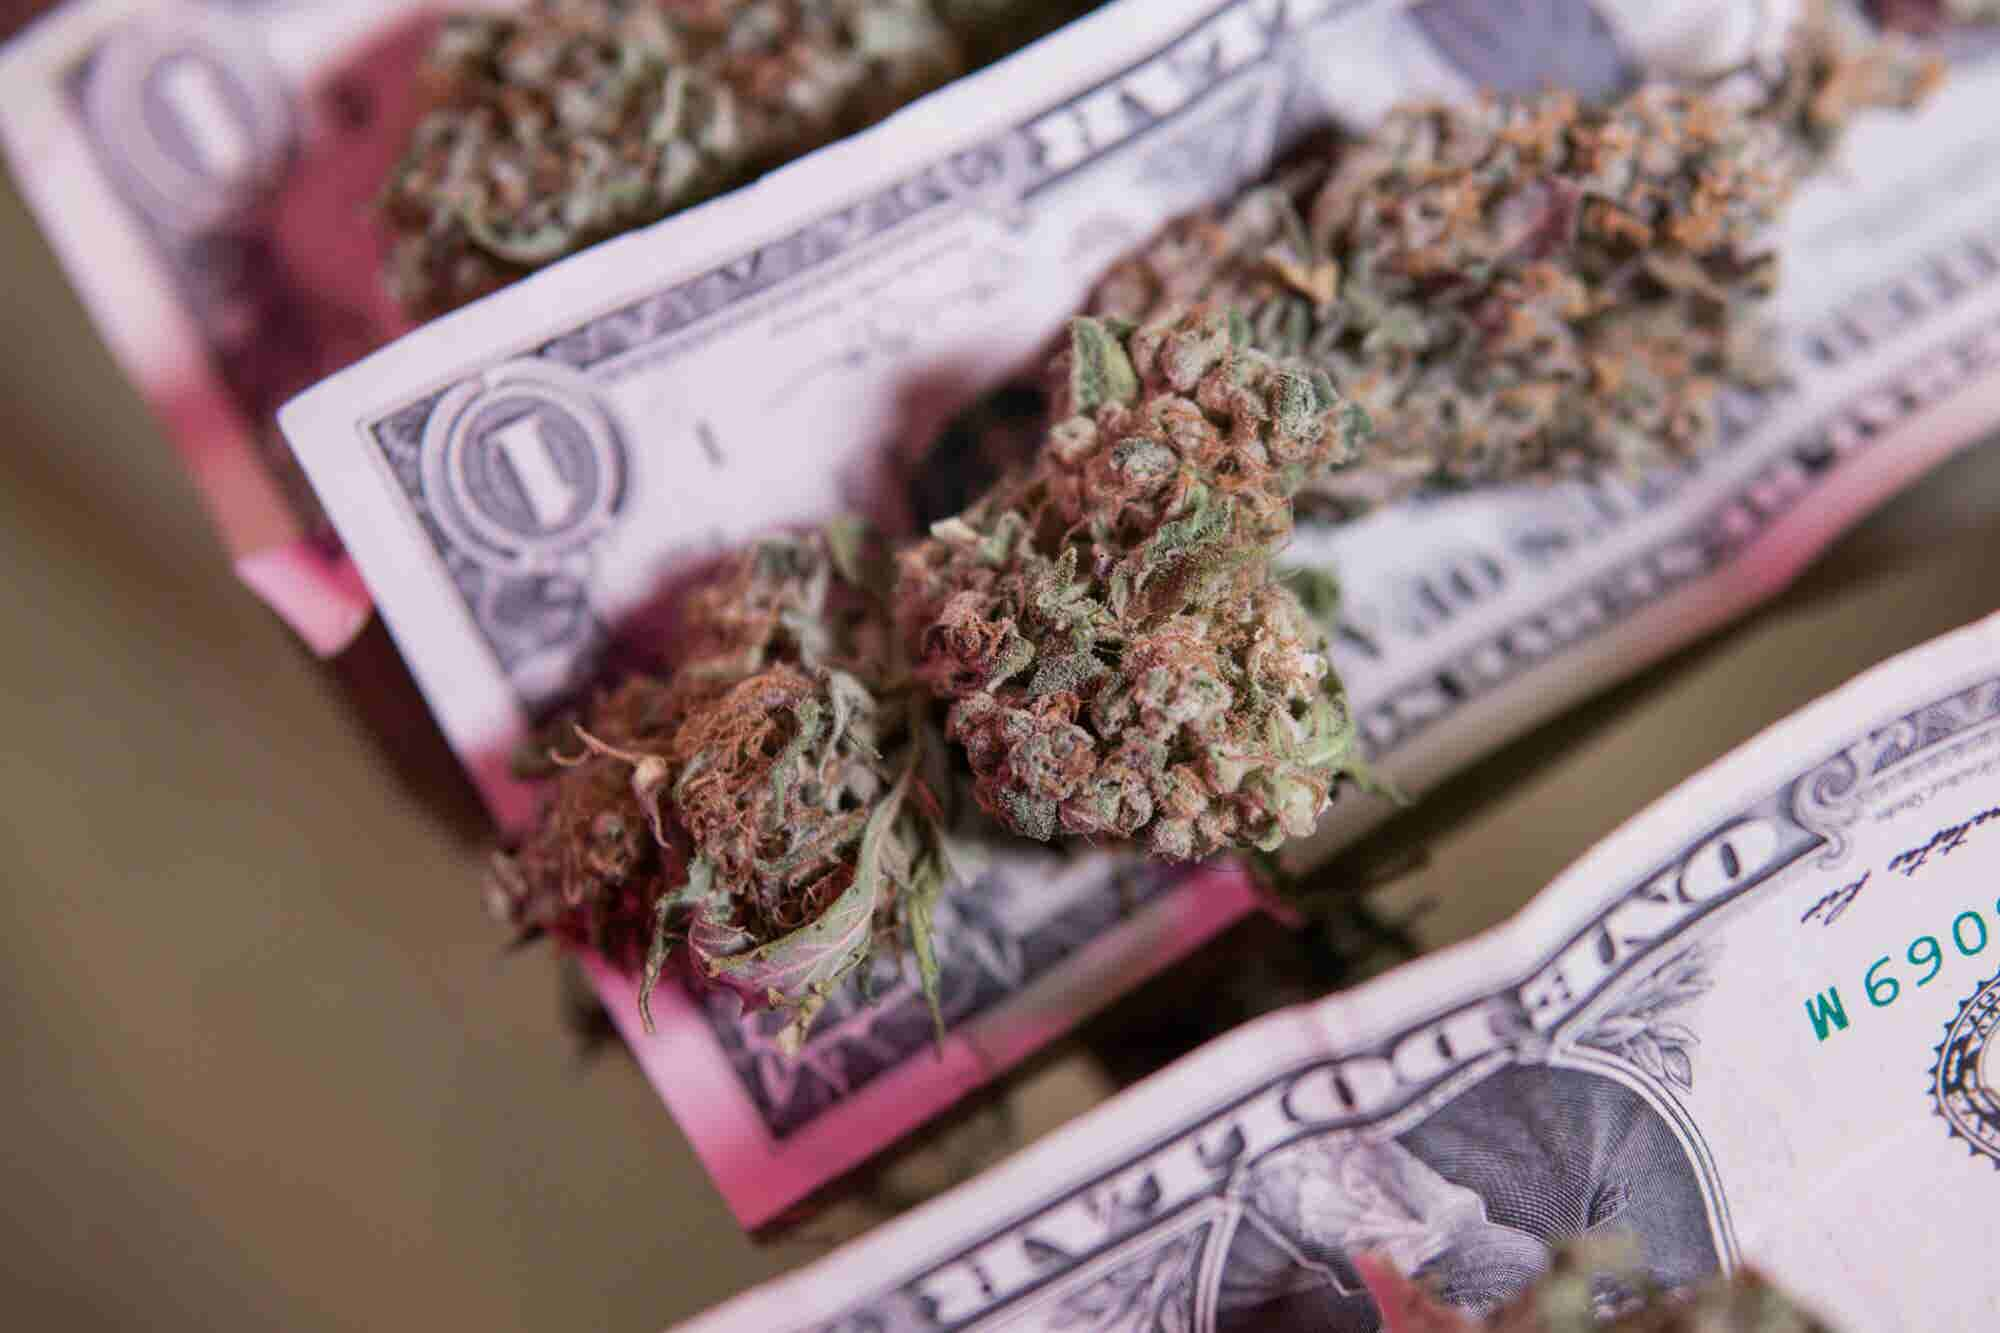 Don't Invest In Legal Cannabis Until You've Read These 5 Tips